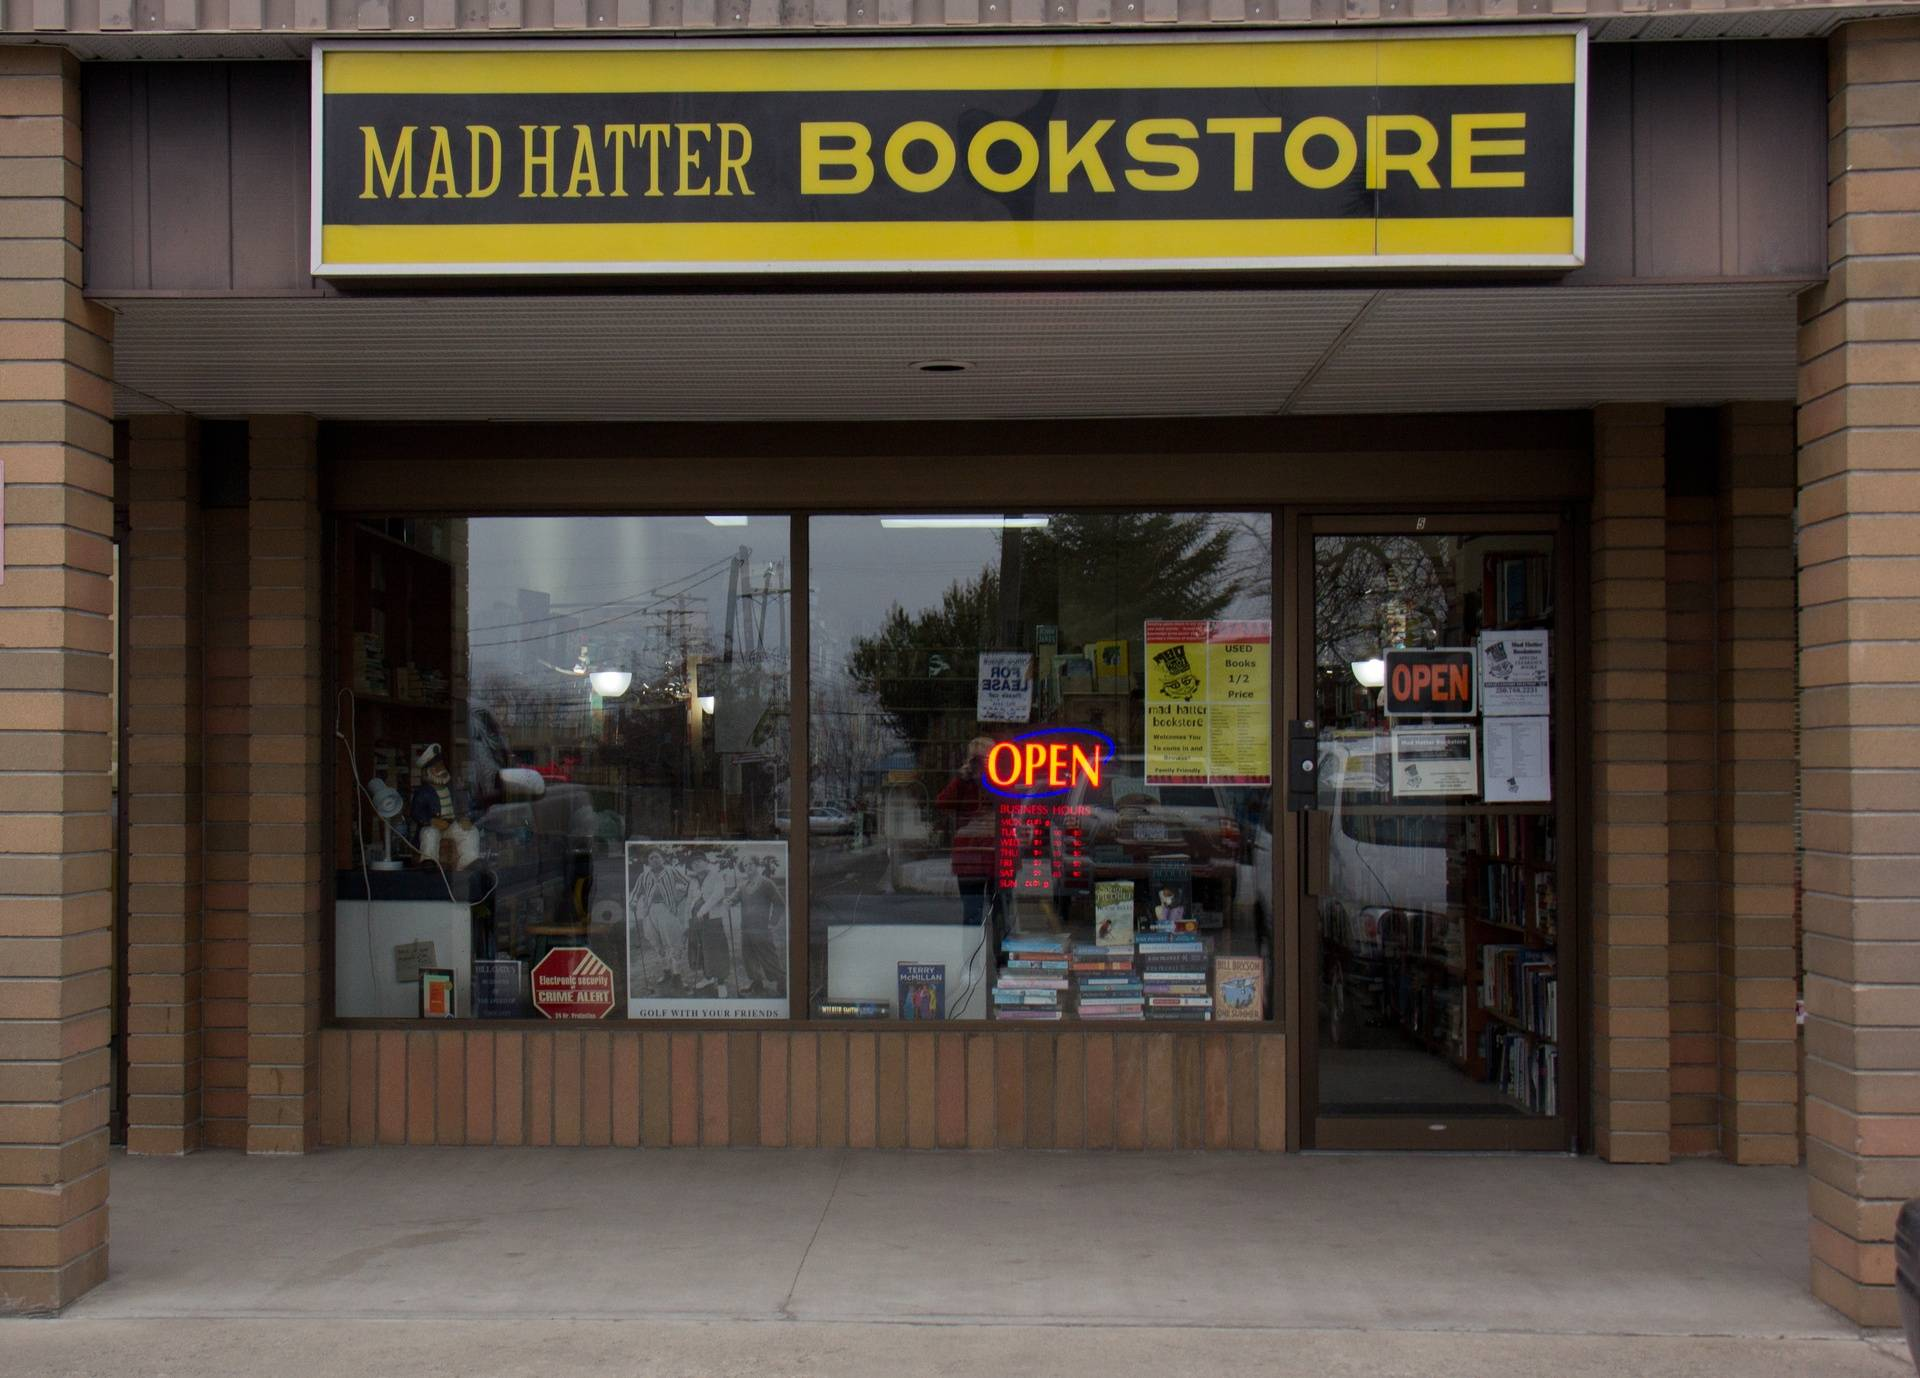 Mad Hatter Bookstore, #5 Plaza 97 South 2483 - Main Street, Westbank, British Columbia, V4T 2E8, CANADA